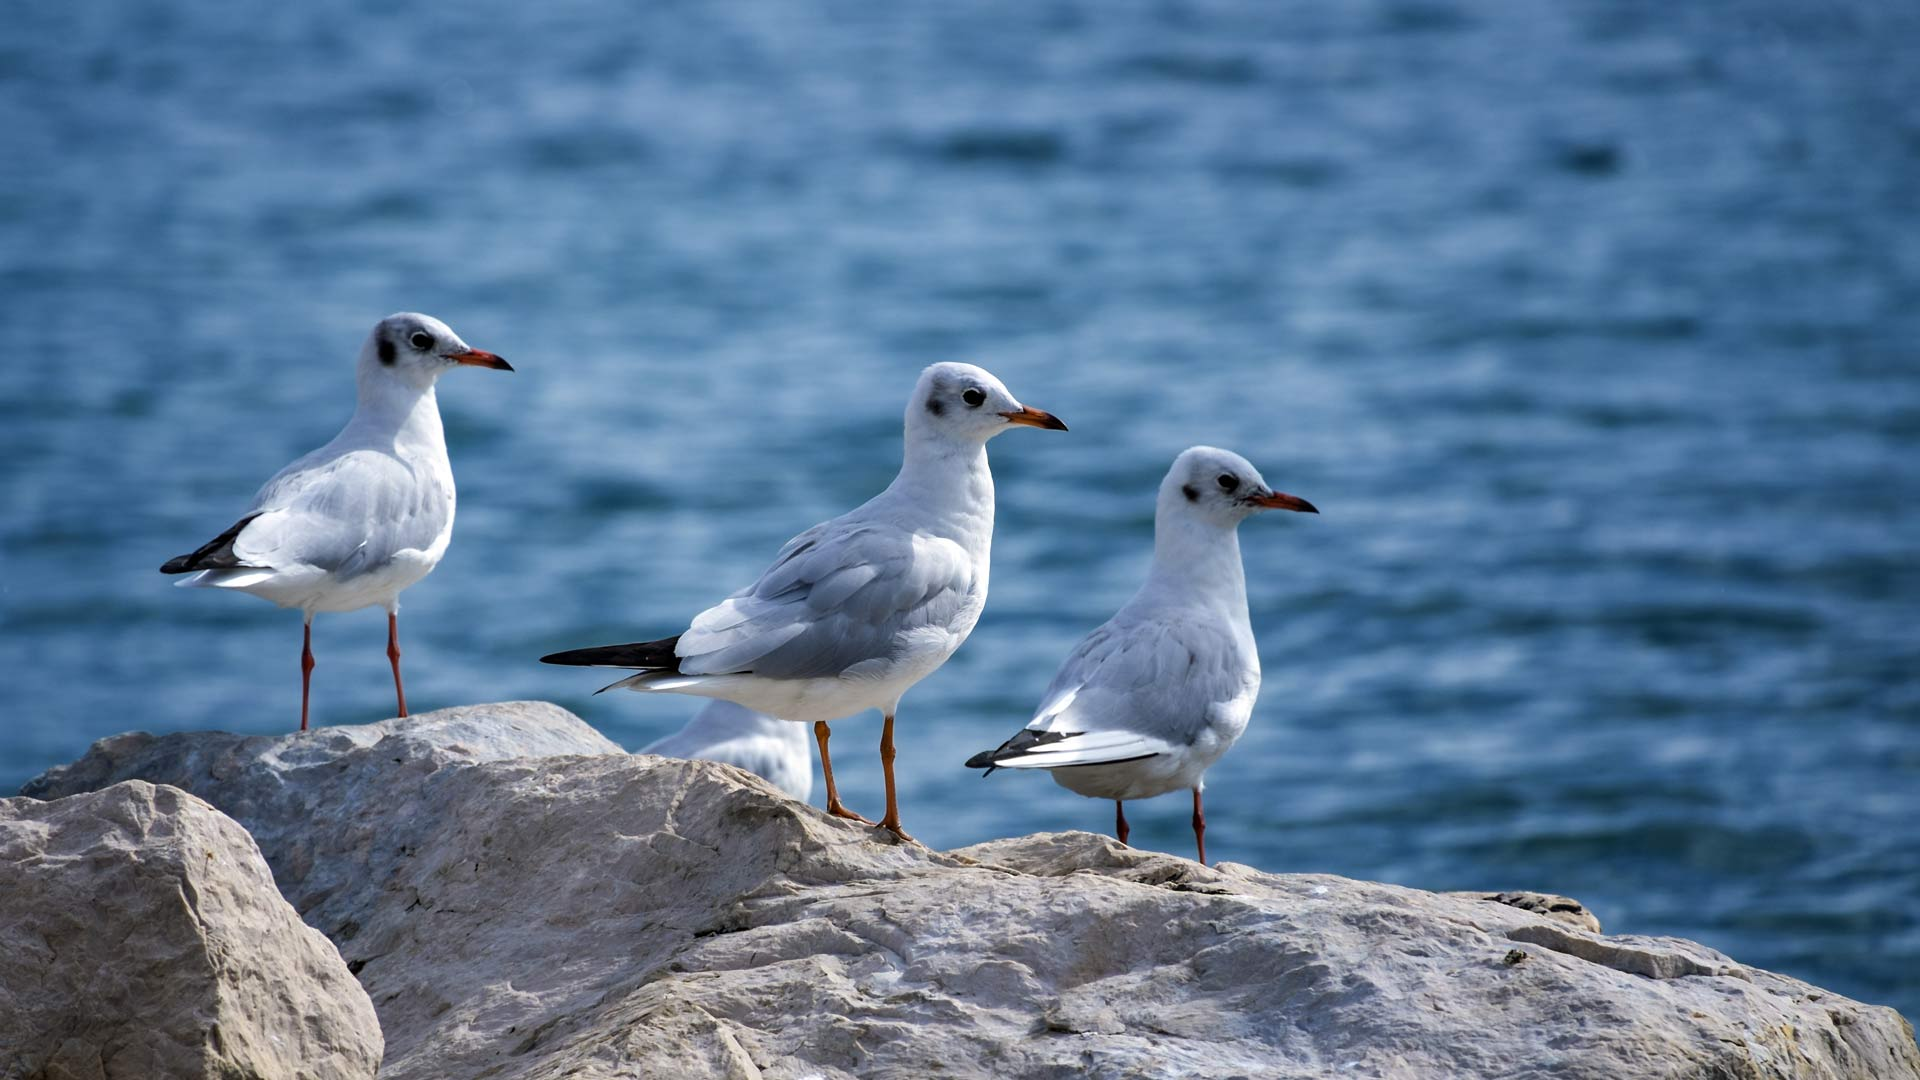 Three black-headed gulls, chroicocephalus ridibundus, standing on a rock near the sea